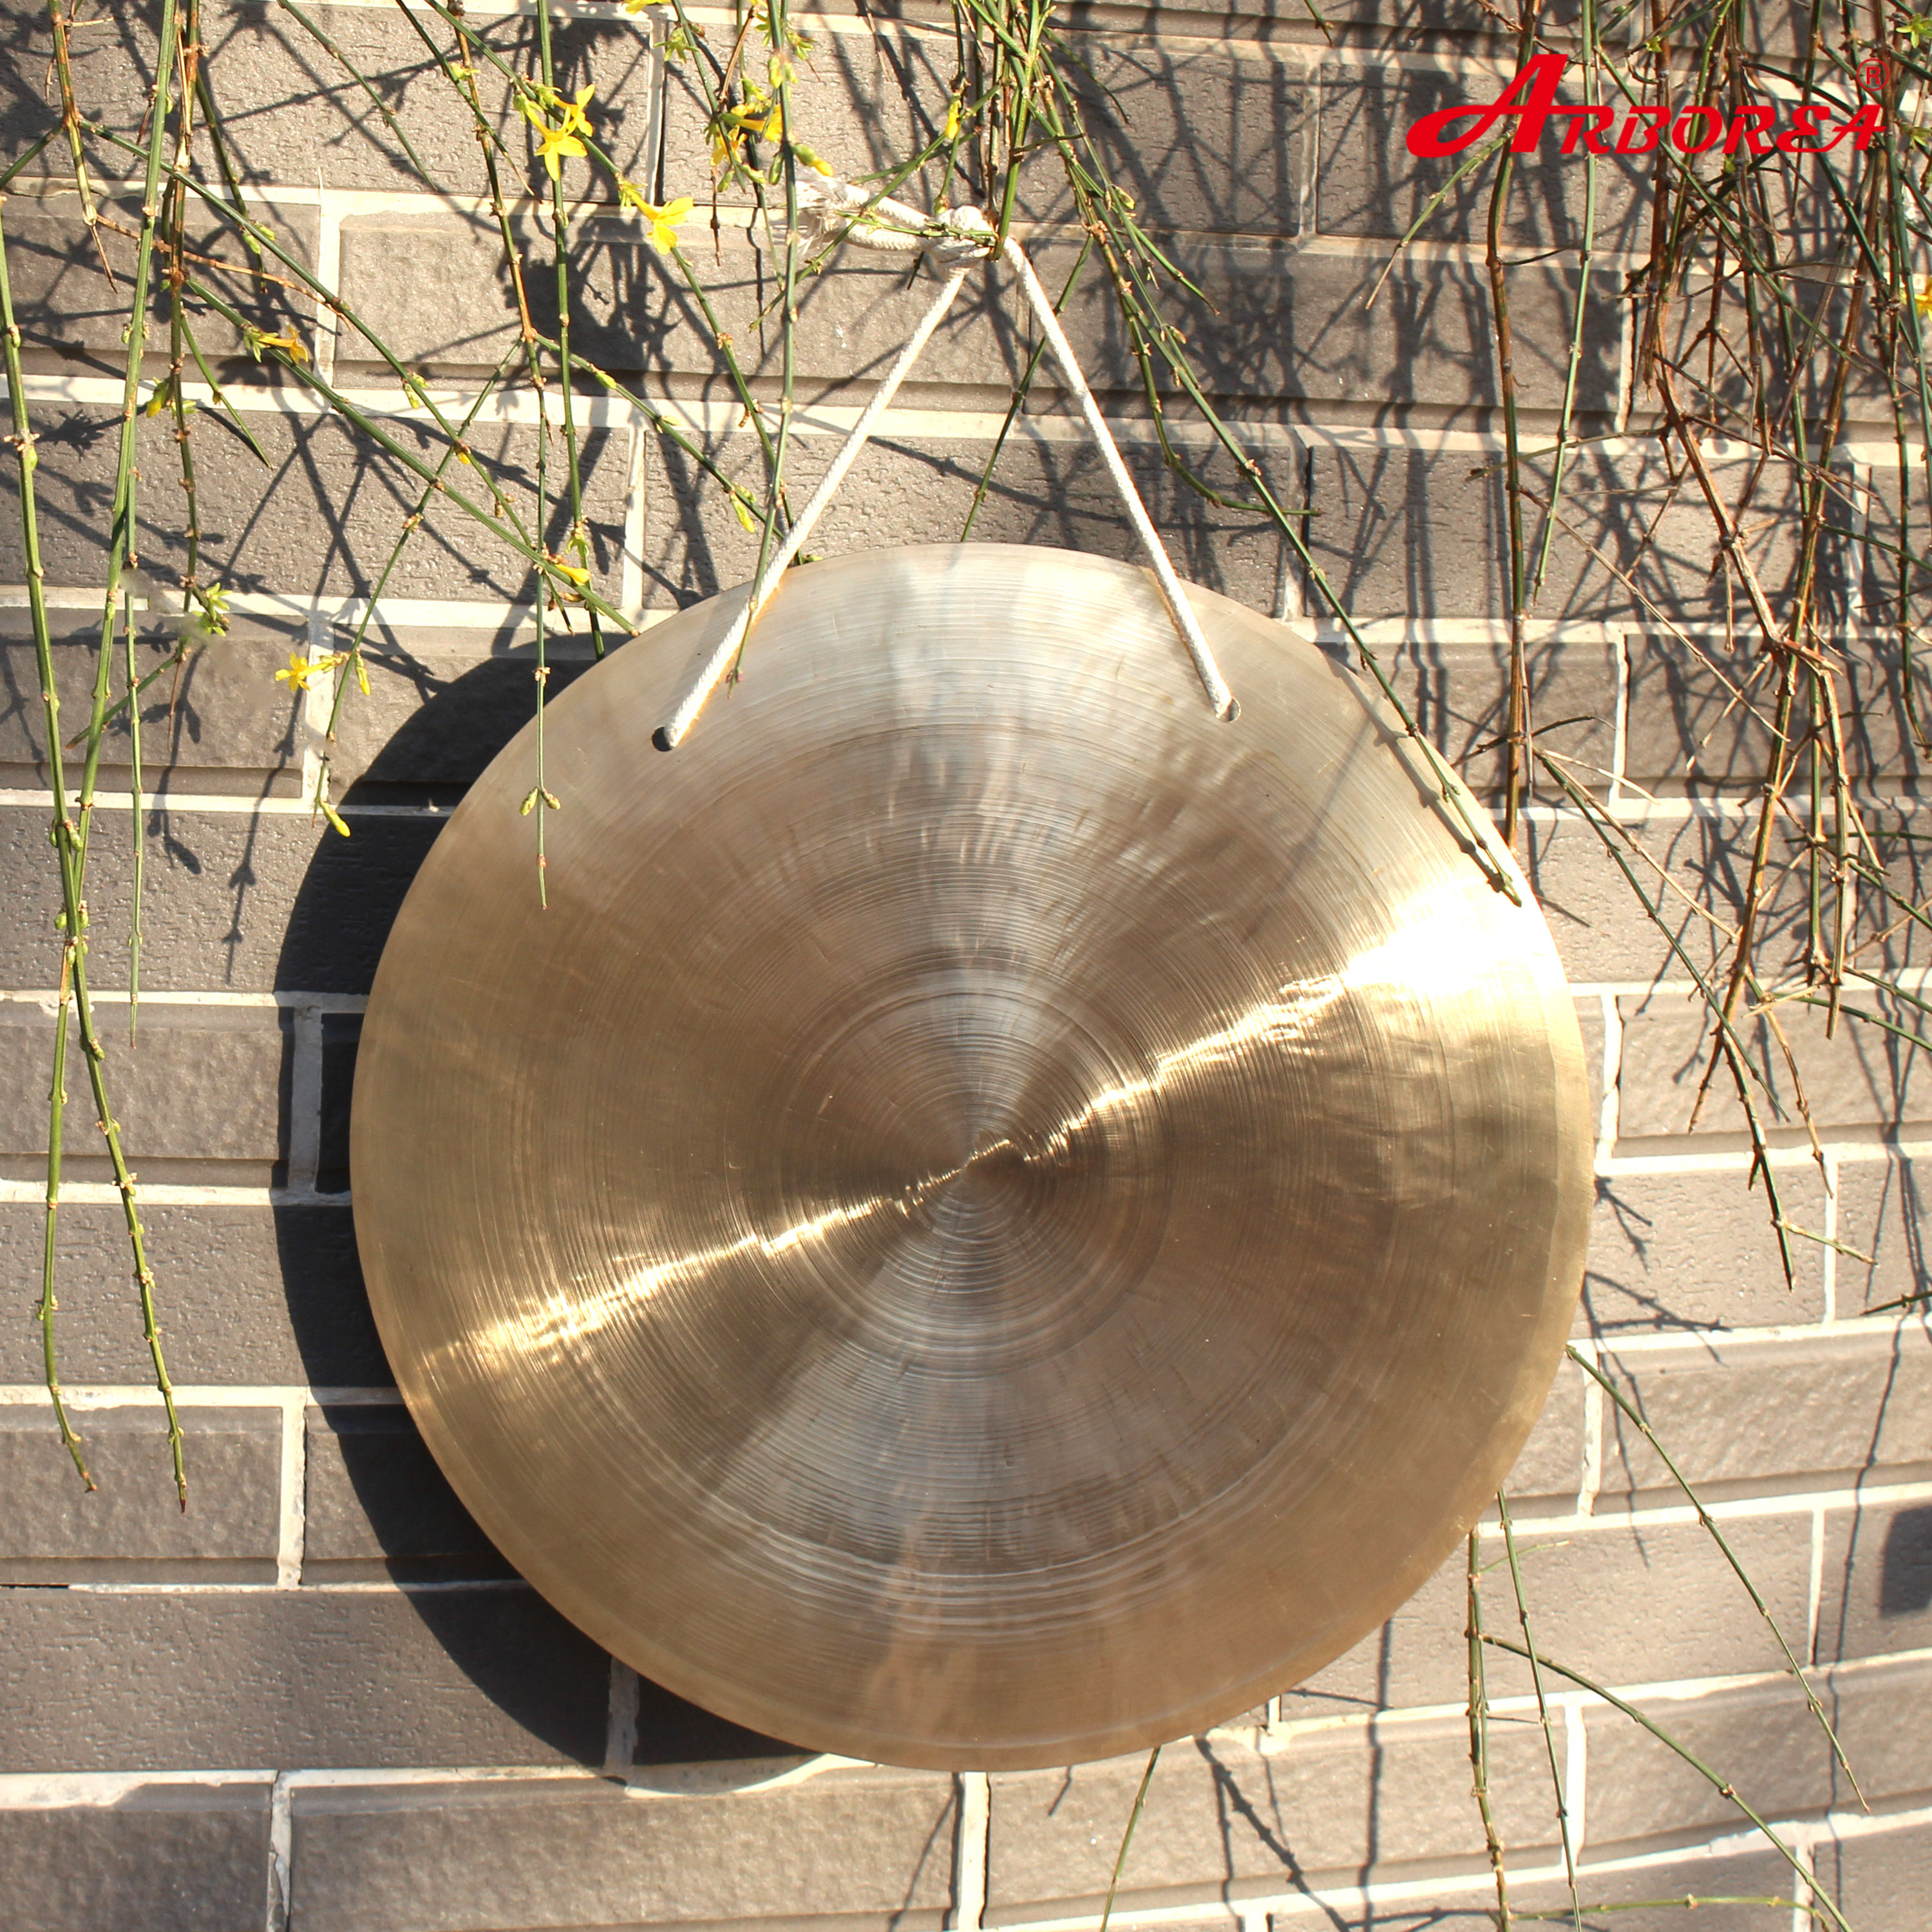 Arborea 30 75cm wind gong Chinese traditional gong with 1 free mallet without stand